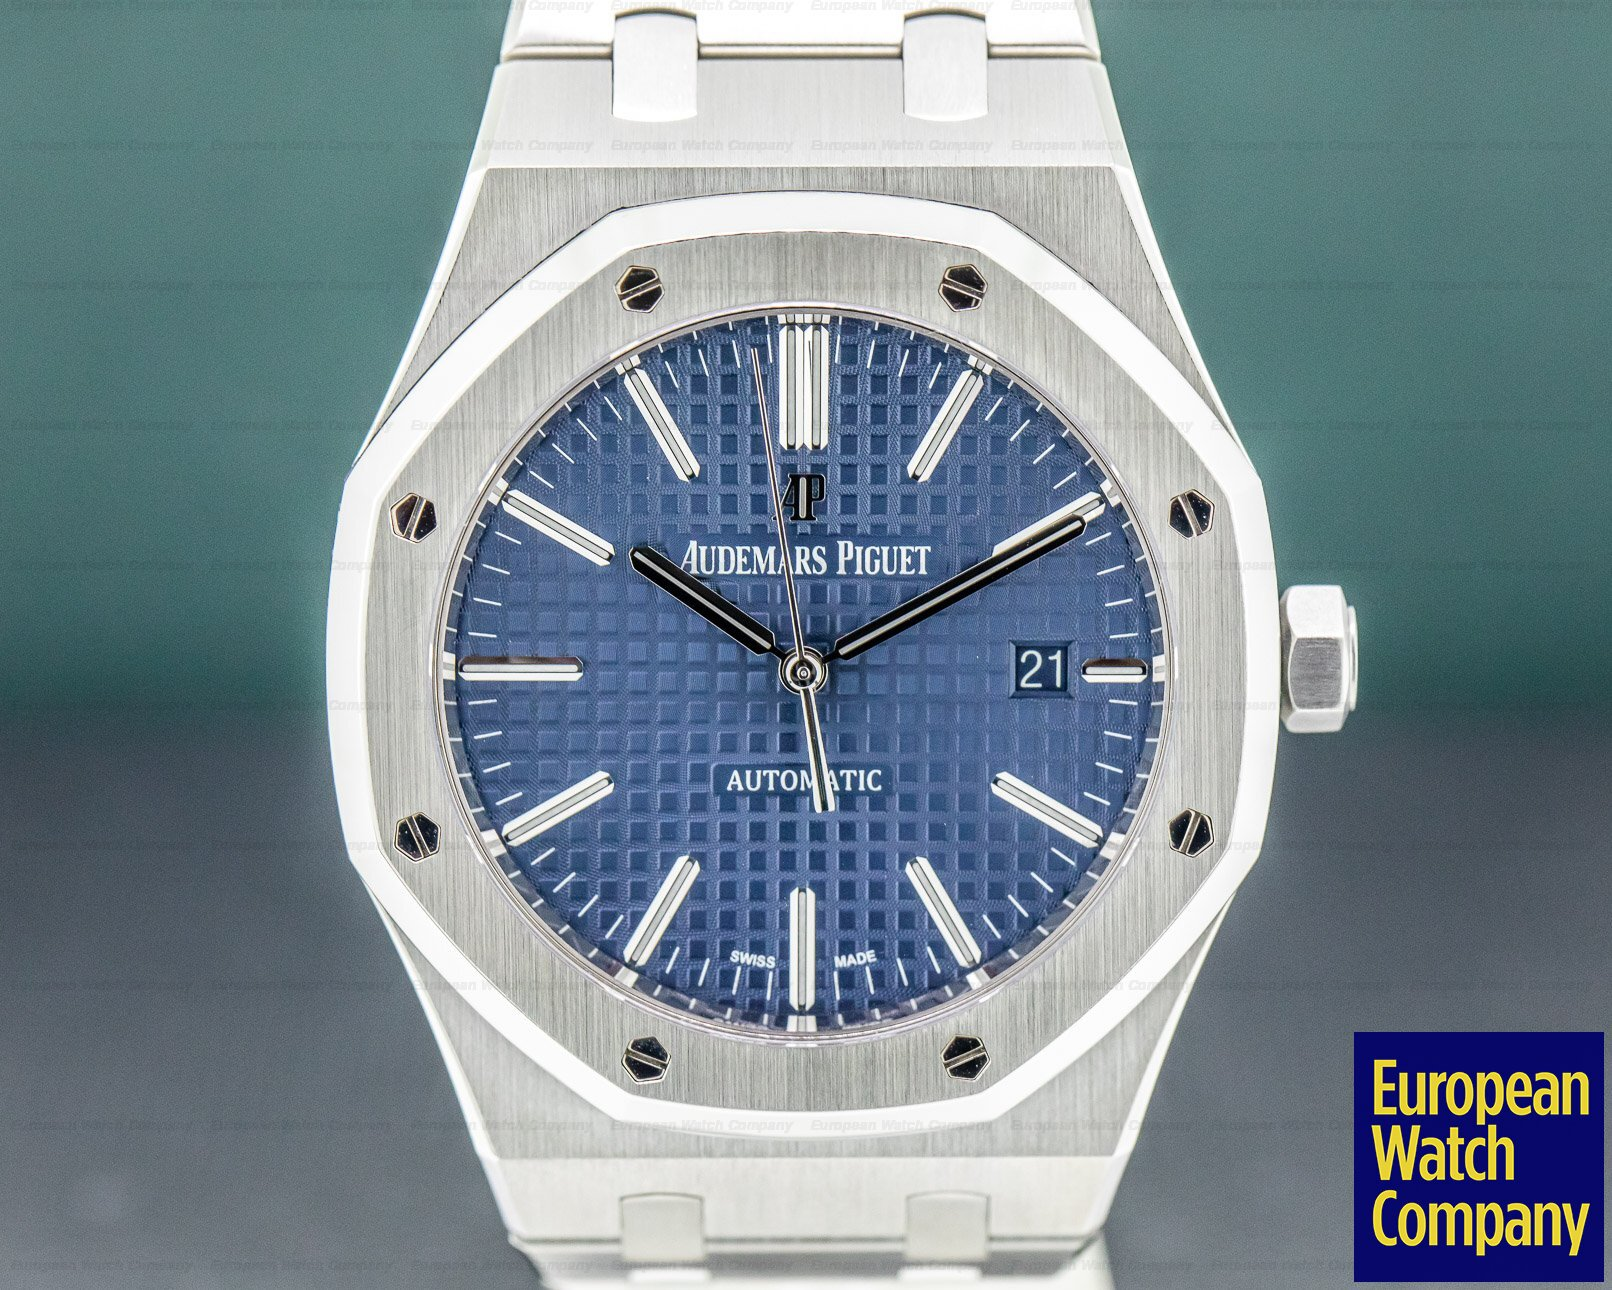 Audemars Piguet 15400ST.OO.1220ST.03 Royal Oak